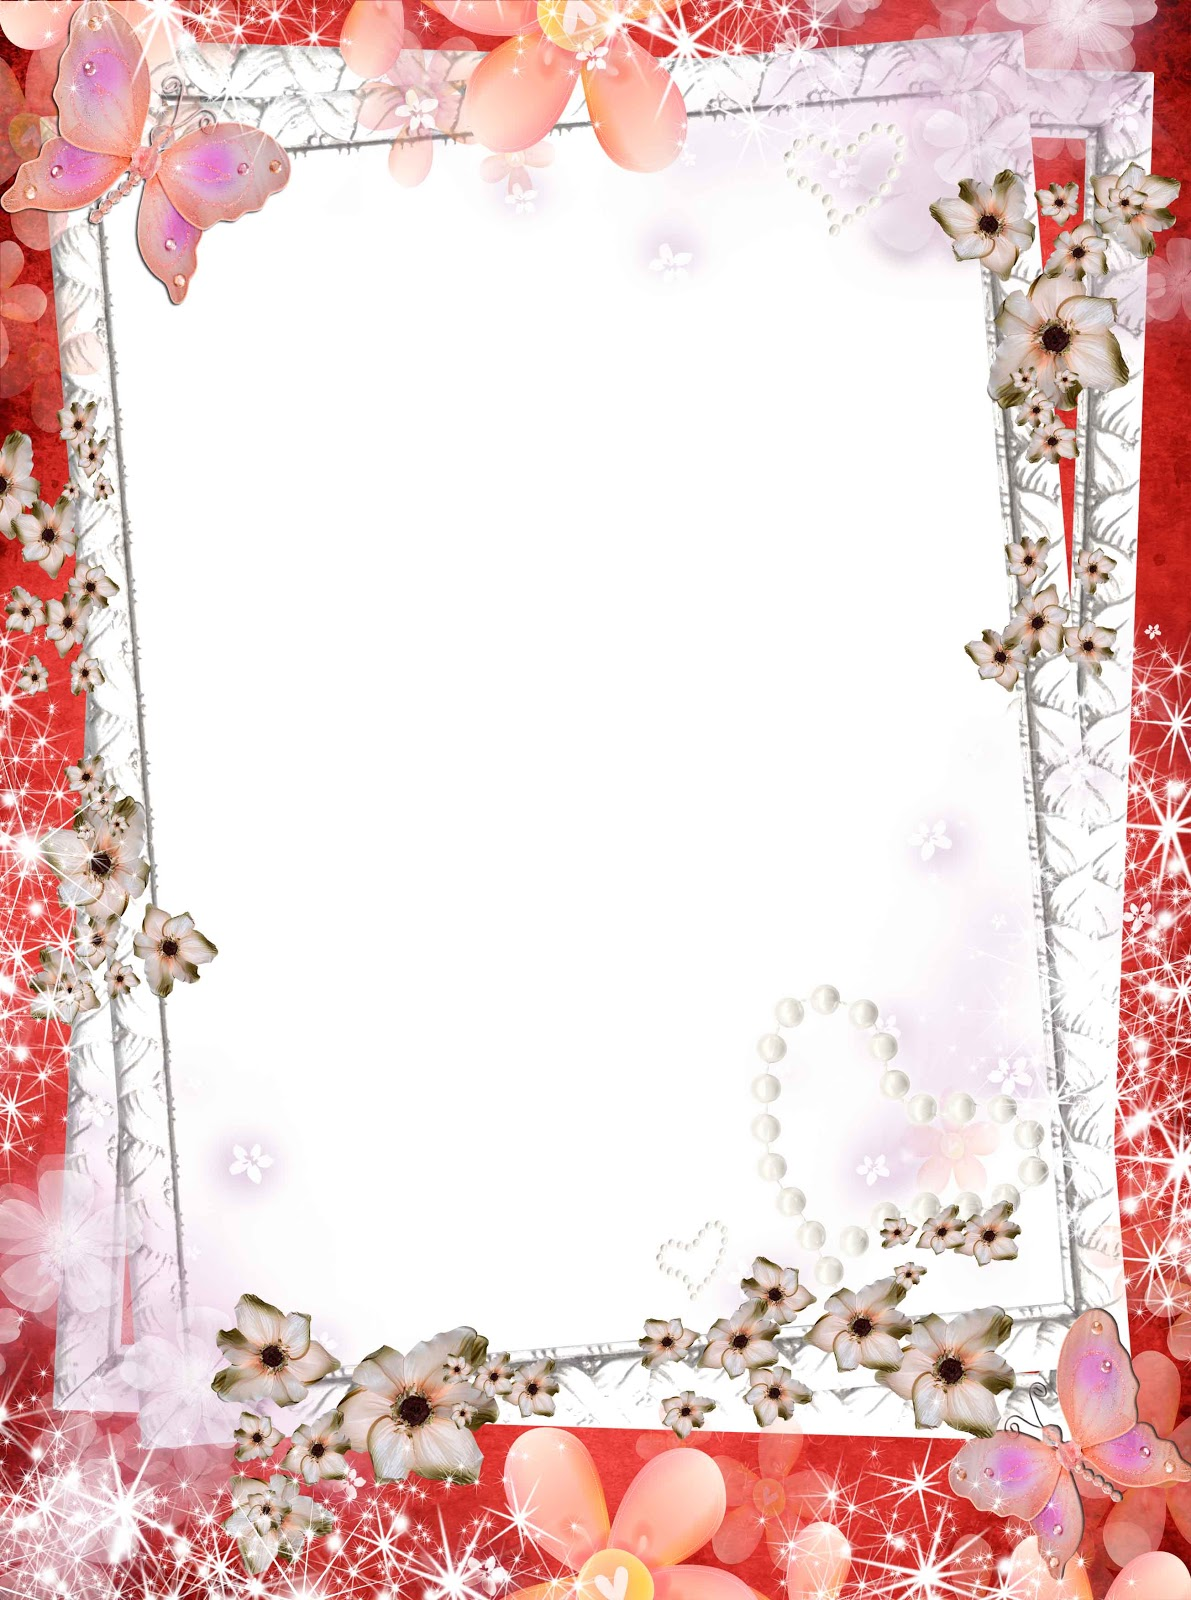 Autumn wooden background wallpaper download autumn - Flowers Png Frame Frame77